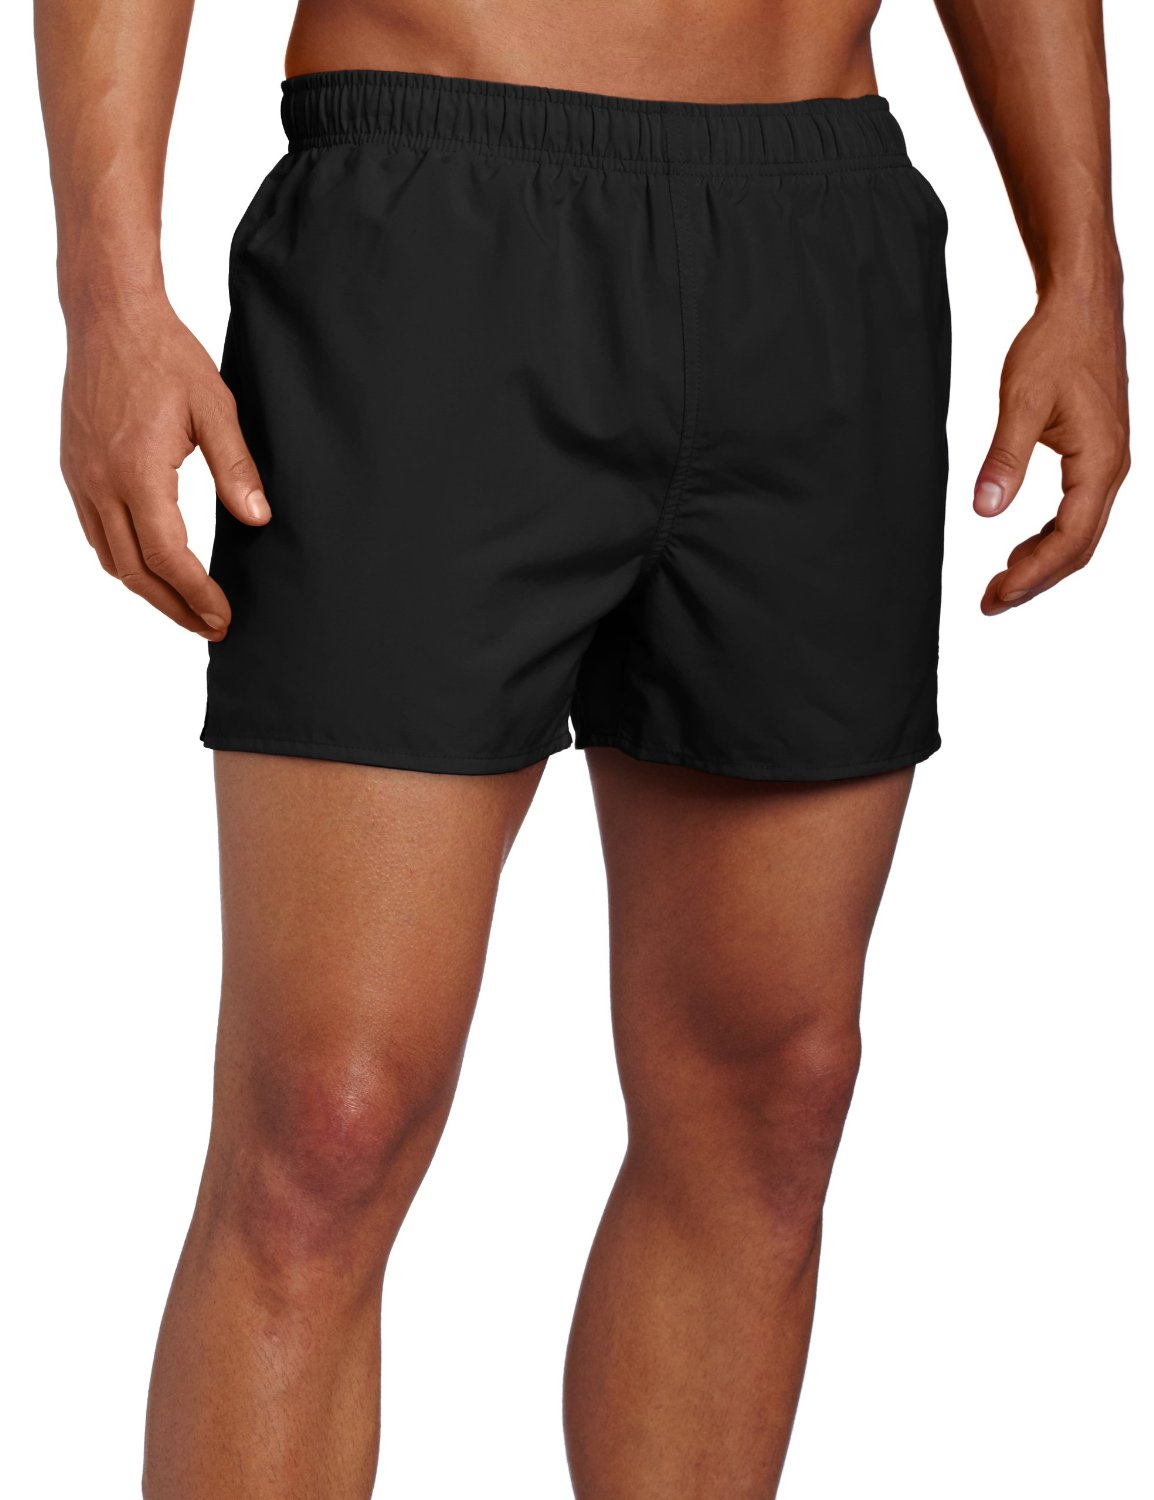 73f9a83fac Buy SPEEDO Mens Playa Volley Swim Trunks in Cheap Price on Alibaba.com